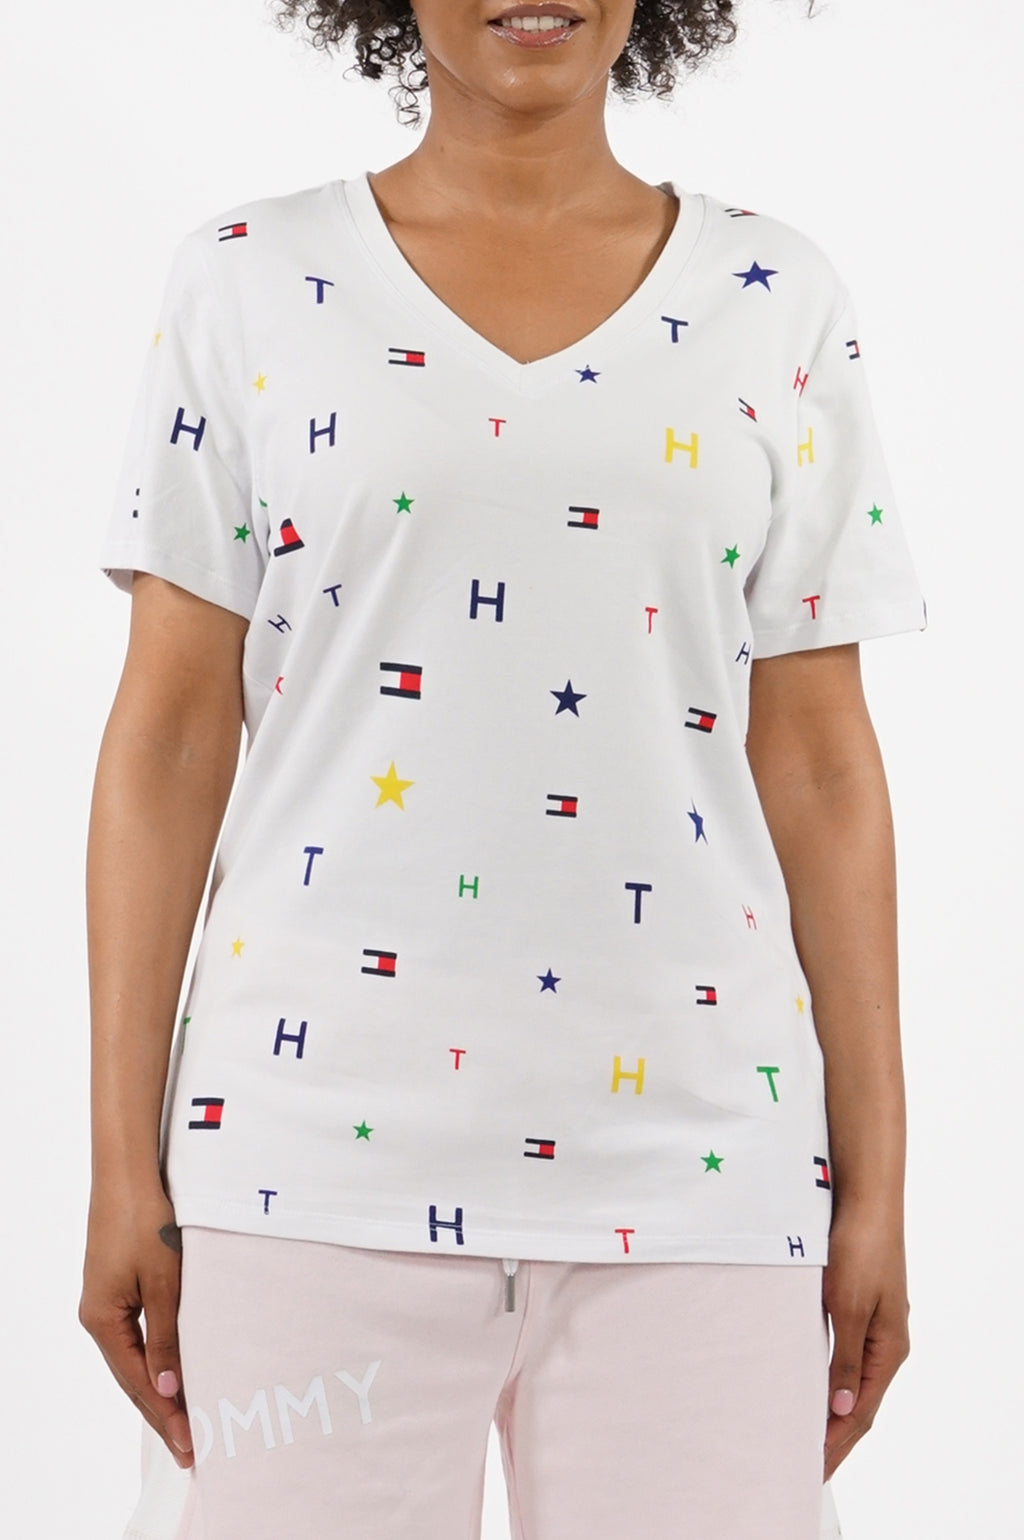 Tommy Hilfiger Activewear Women V Neck Short Sleeve Printed Logo Idol Tee